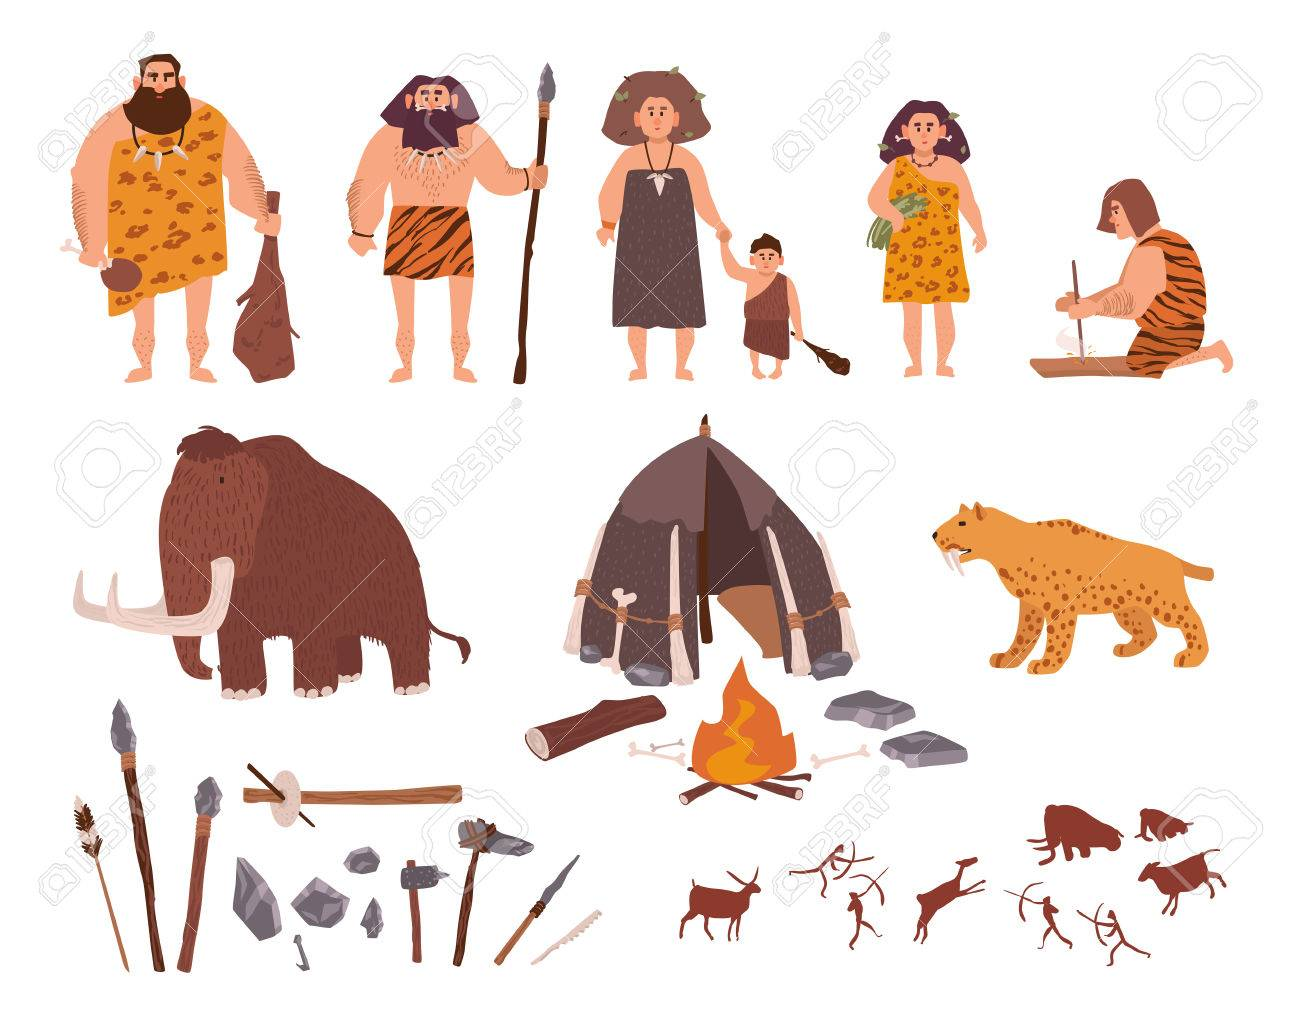 Set of Stone Age theme. Primitive people, children, mammoth, dwelling, hunting and labor tools, saber-toothed tiger, fire, rock carvings. Colorful vector collection in cartoon style. - 80632235